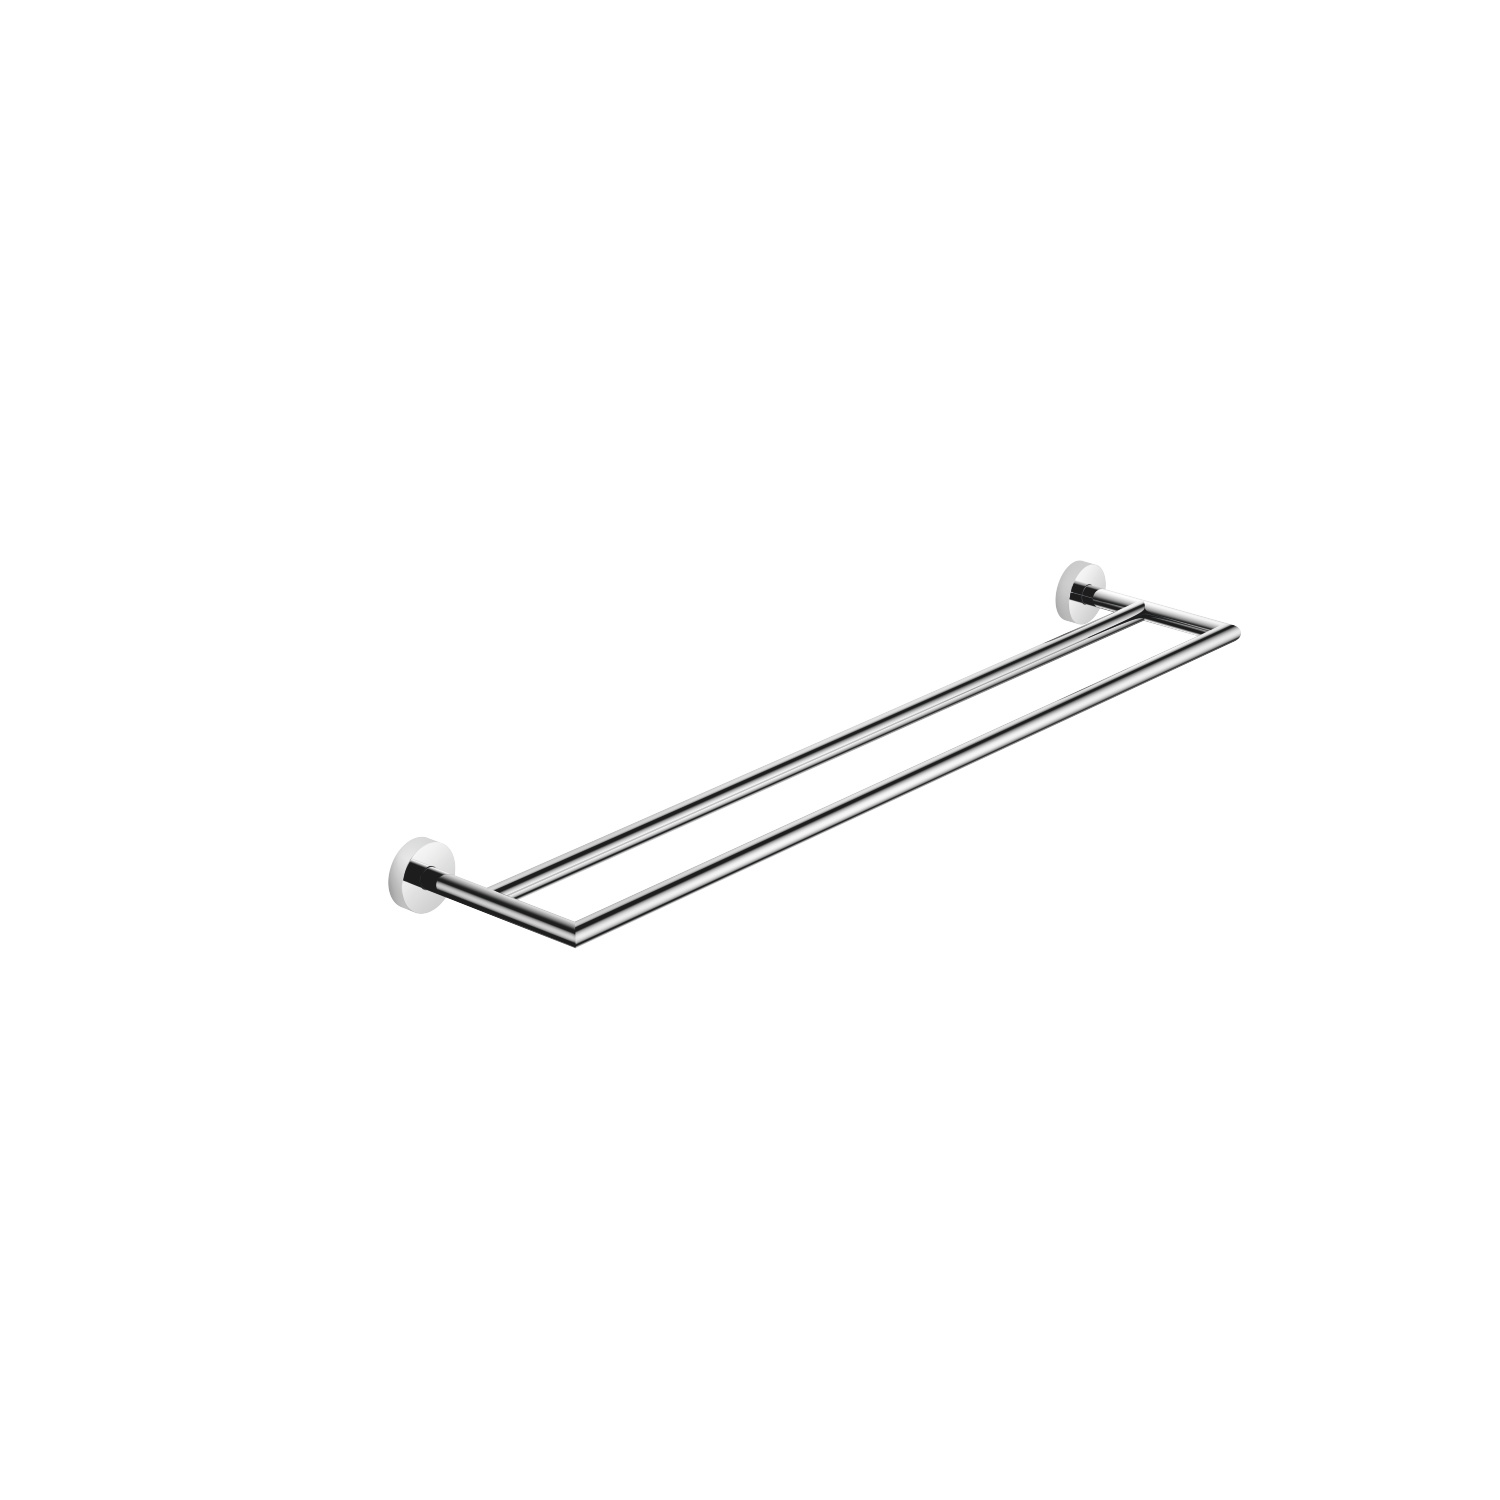 Towel bar in two parts - polished chrome